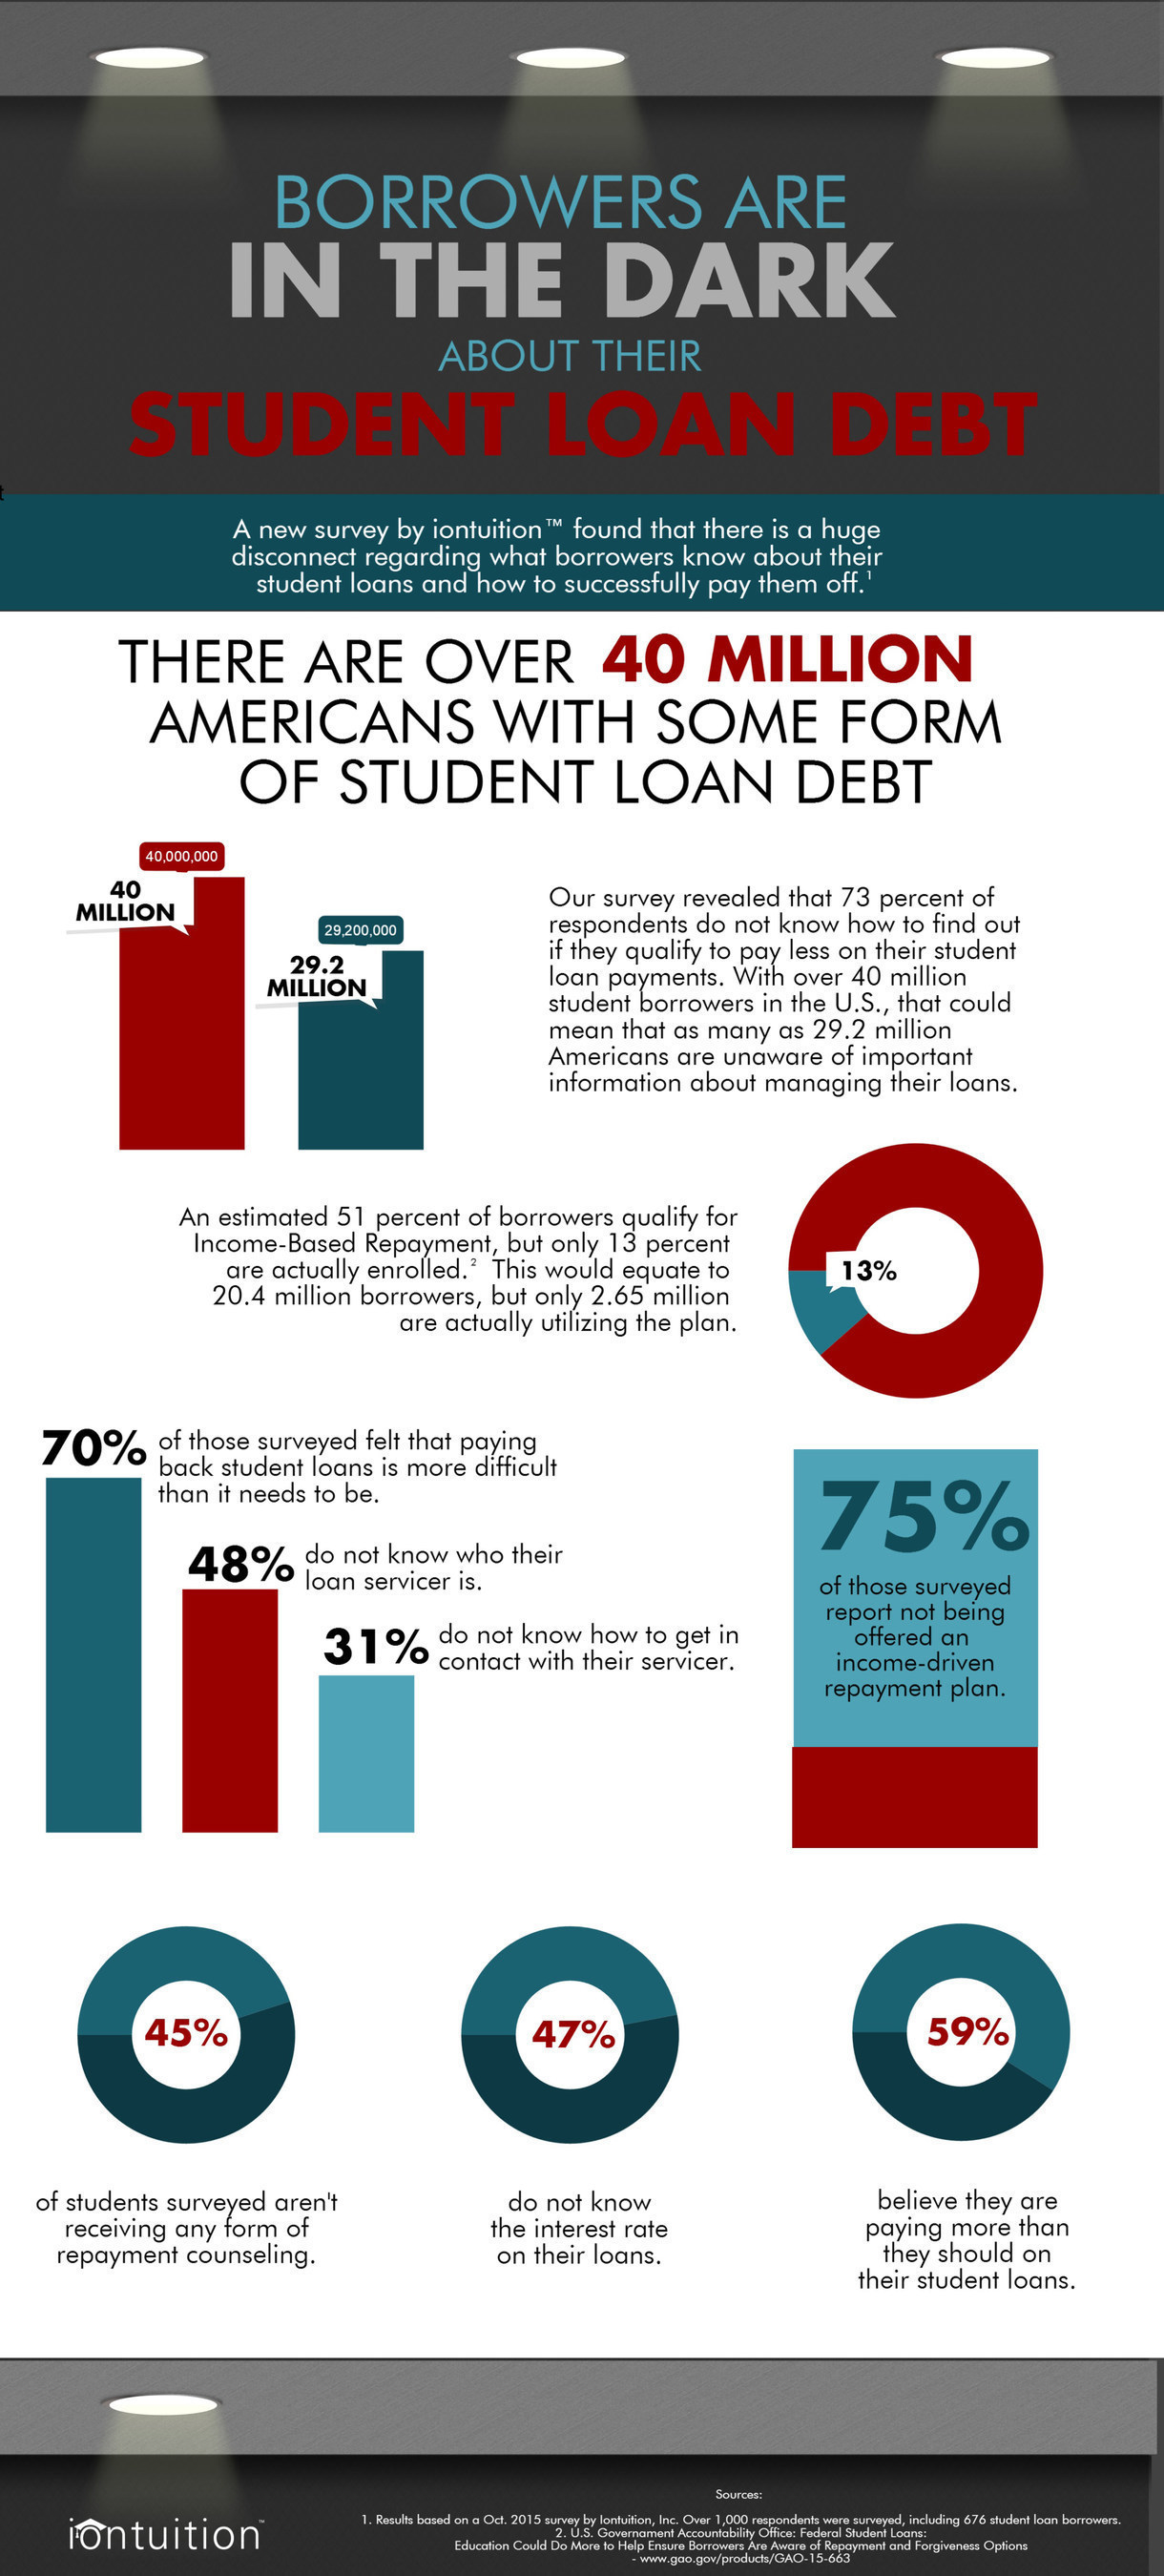 iontuition surveys student loan borrowers